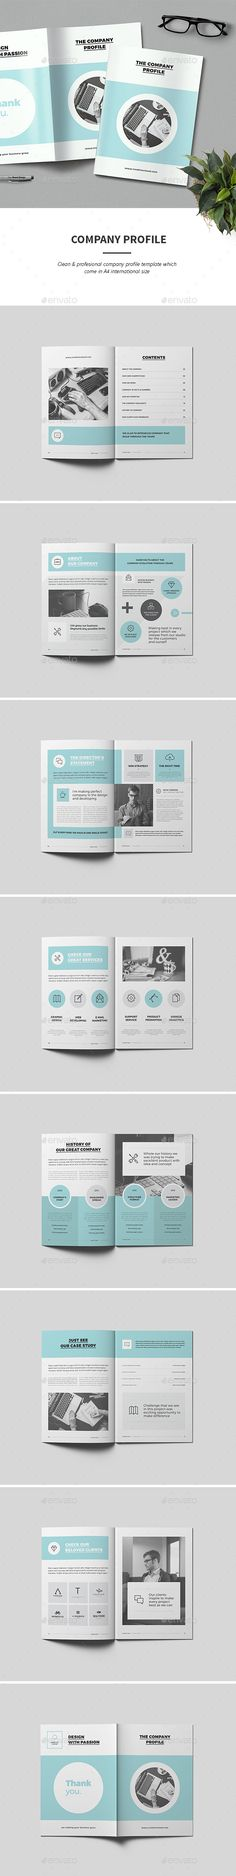 Company Profile - Corporate Brochures Download here : https://graphicriver.net/item/company-profile/18934096?s_rank=131&ref=Al-fatih